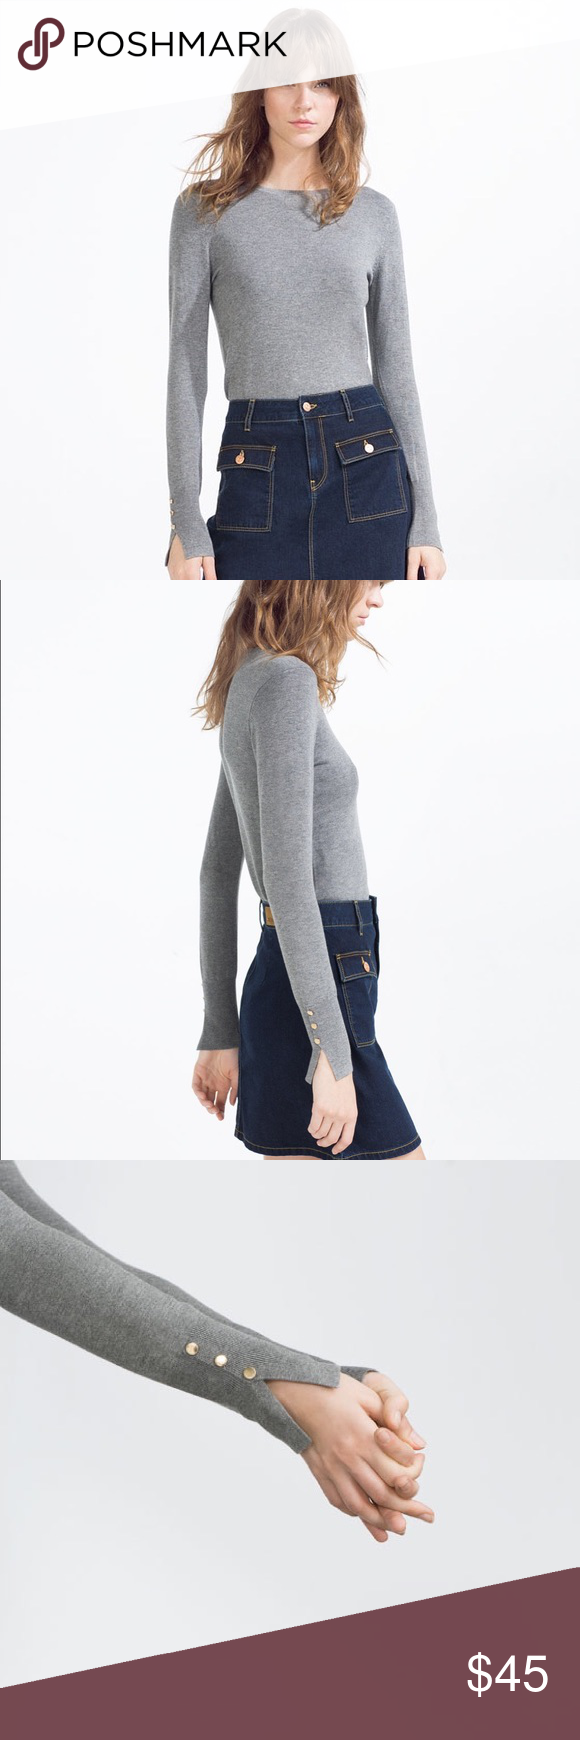 Mid grey knit sweater with sleeve details NWT | Scoop neck ...